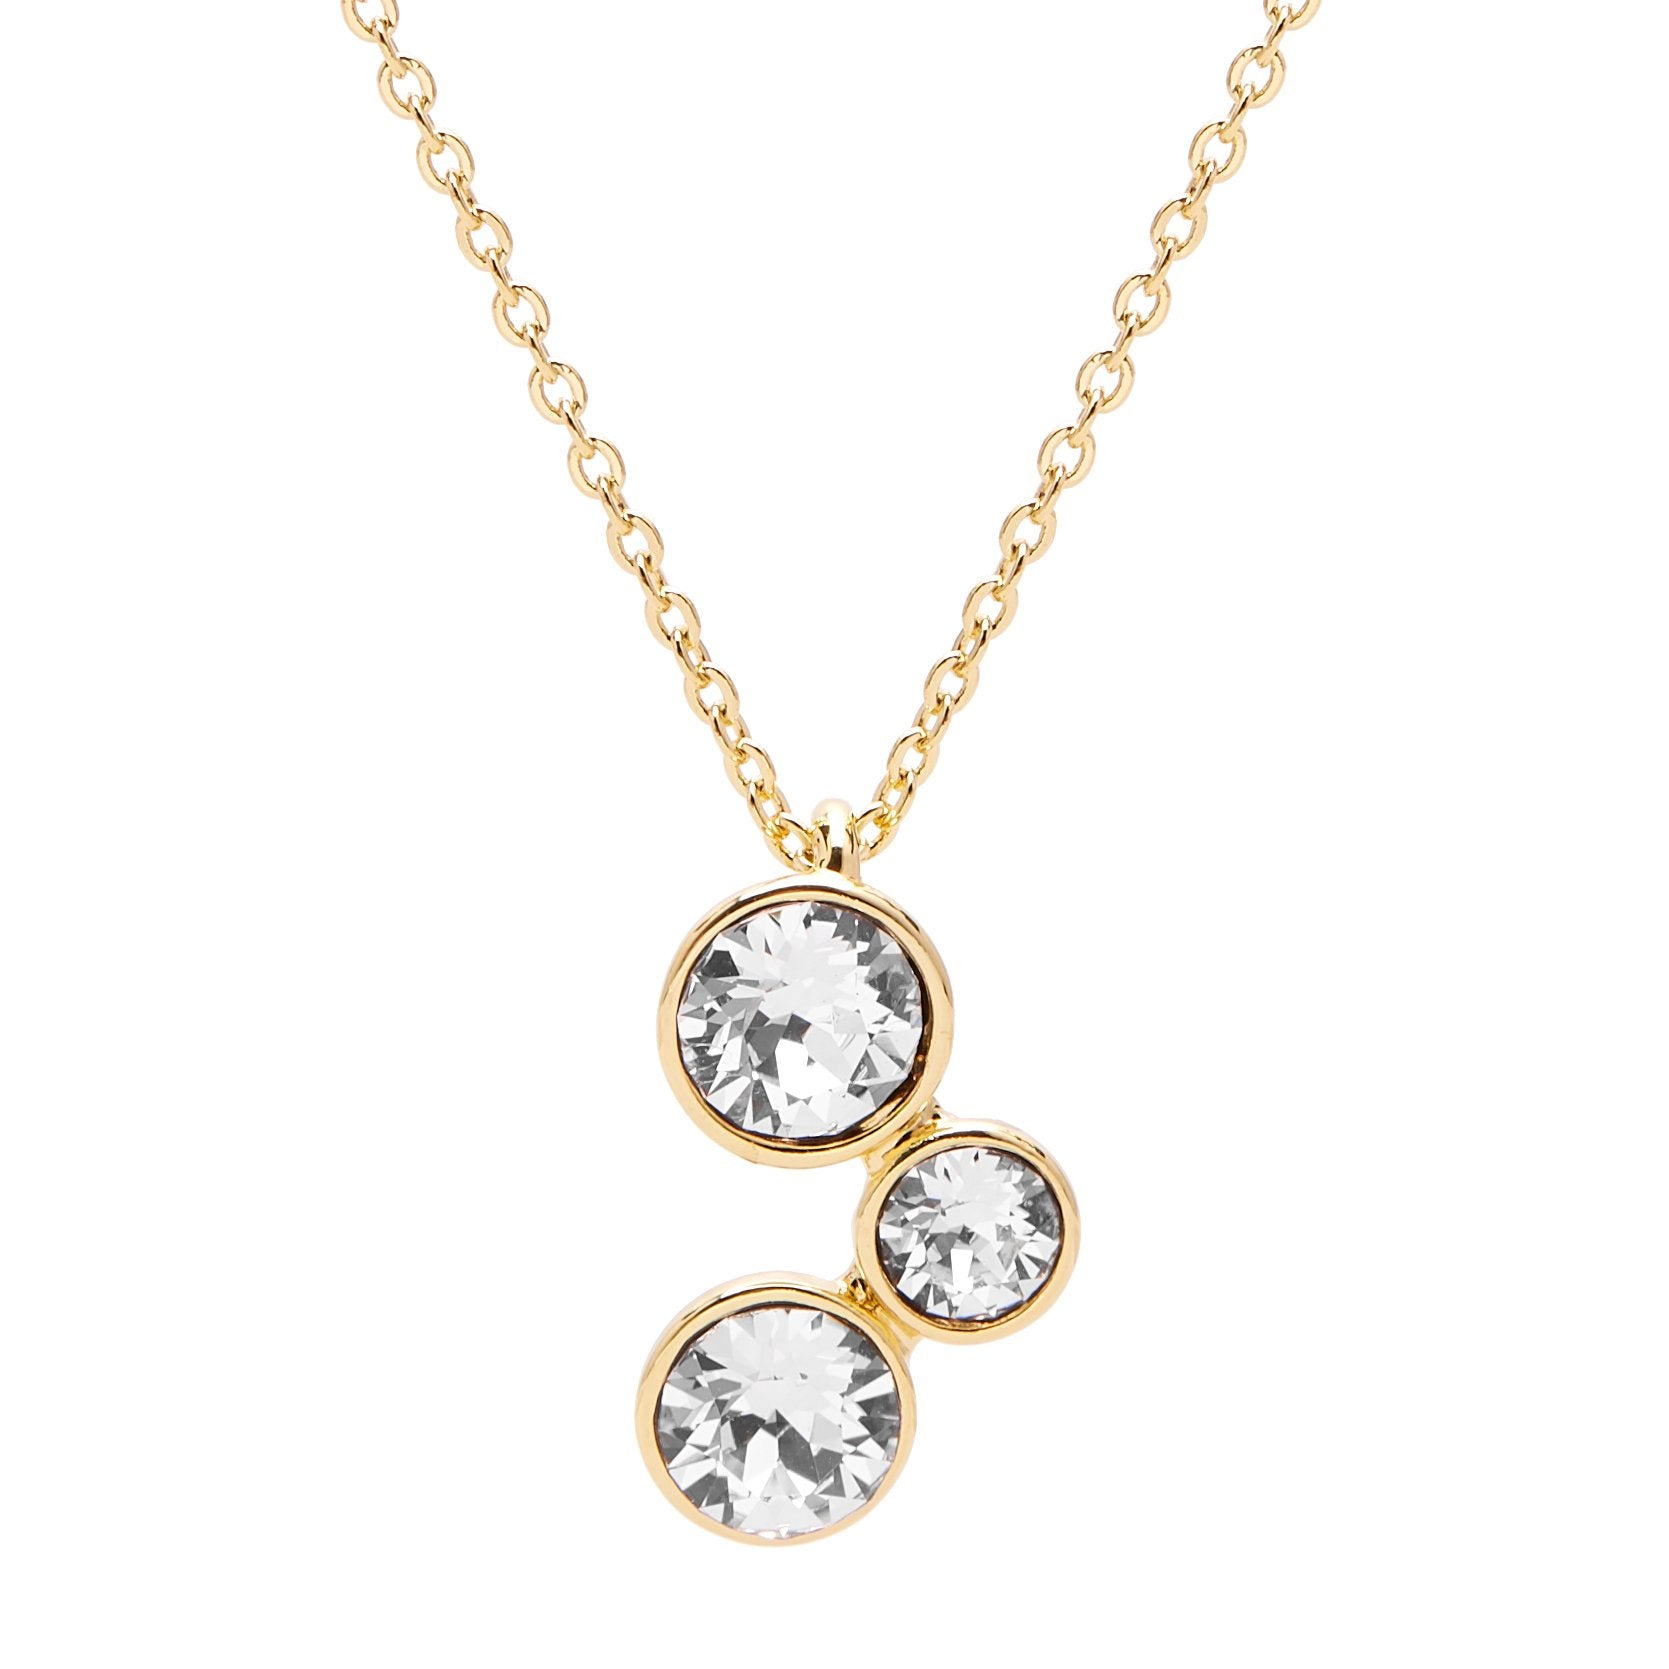 Aura 18k Gold Plated Pendant Necklace with 3 Crystals from Swarovski¨ - Harpson Accessories